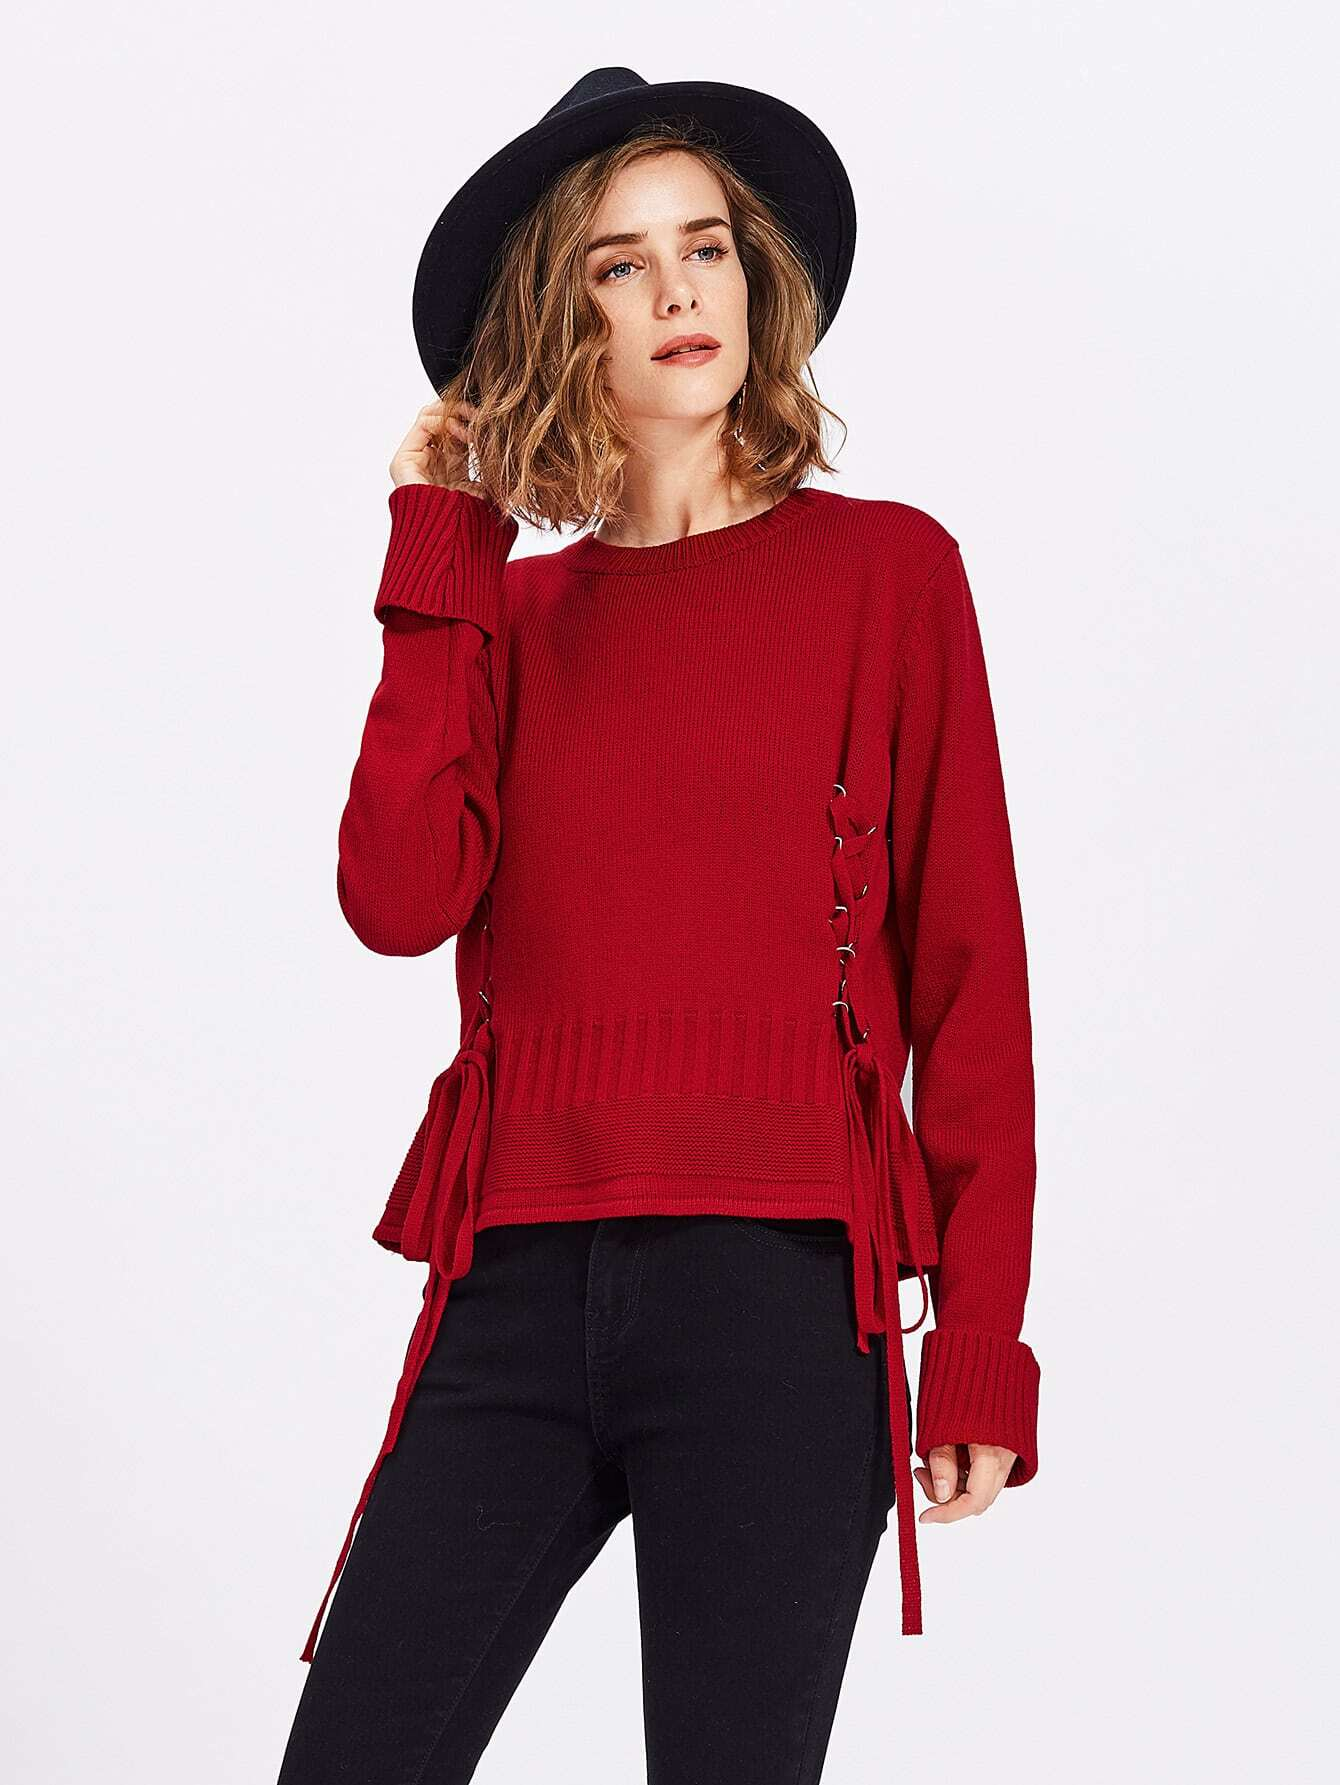 Ribbed Roll Cuff Lace Up Jumper sweater170720466